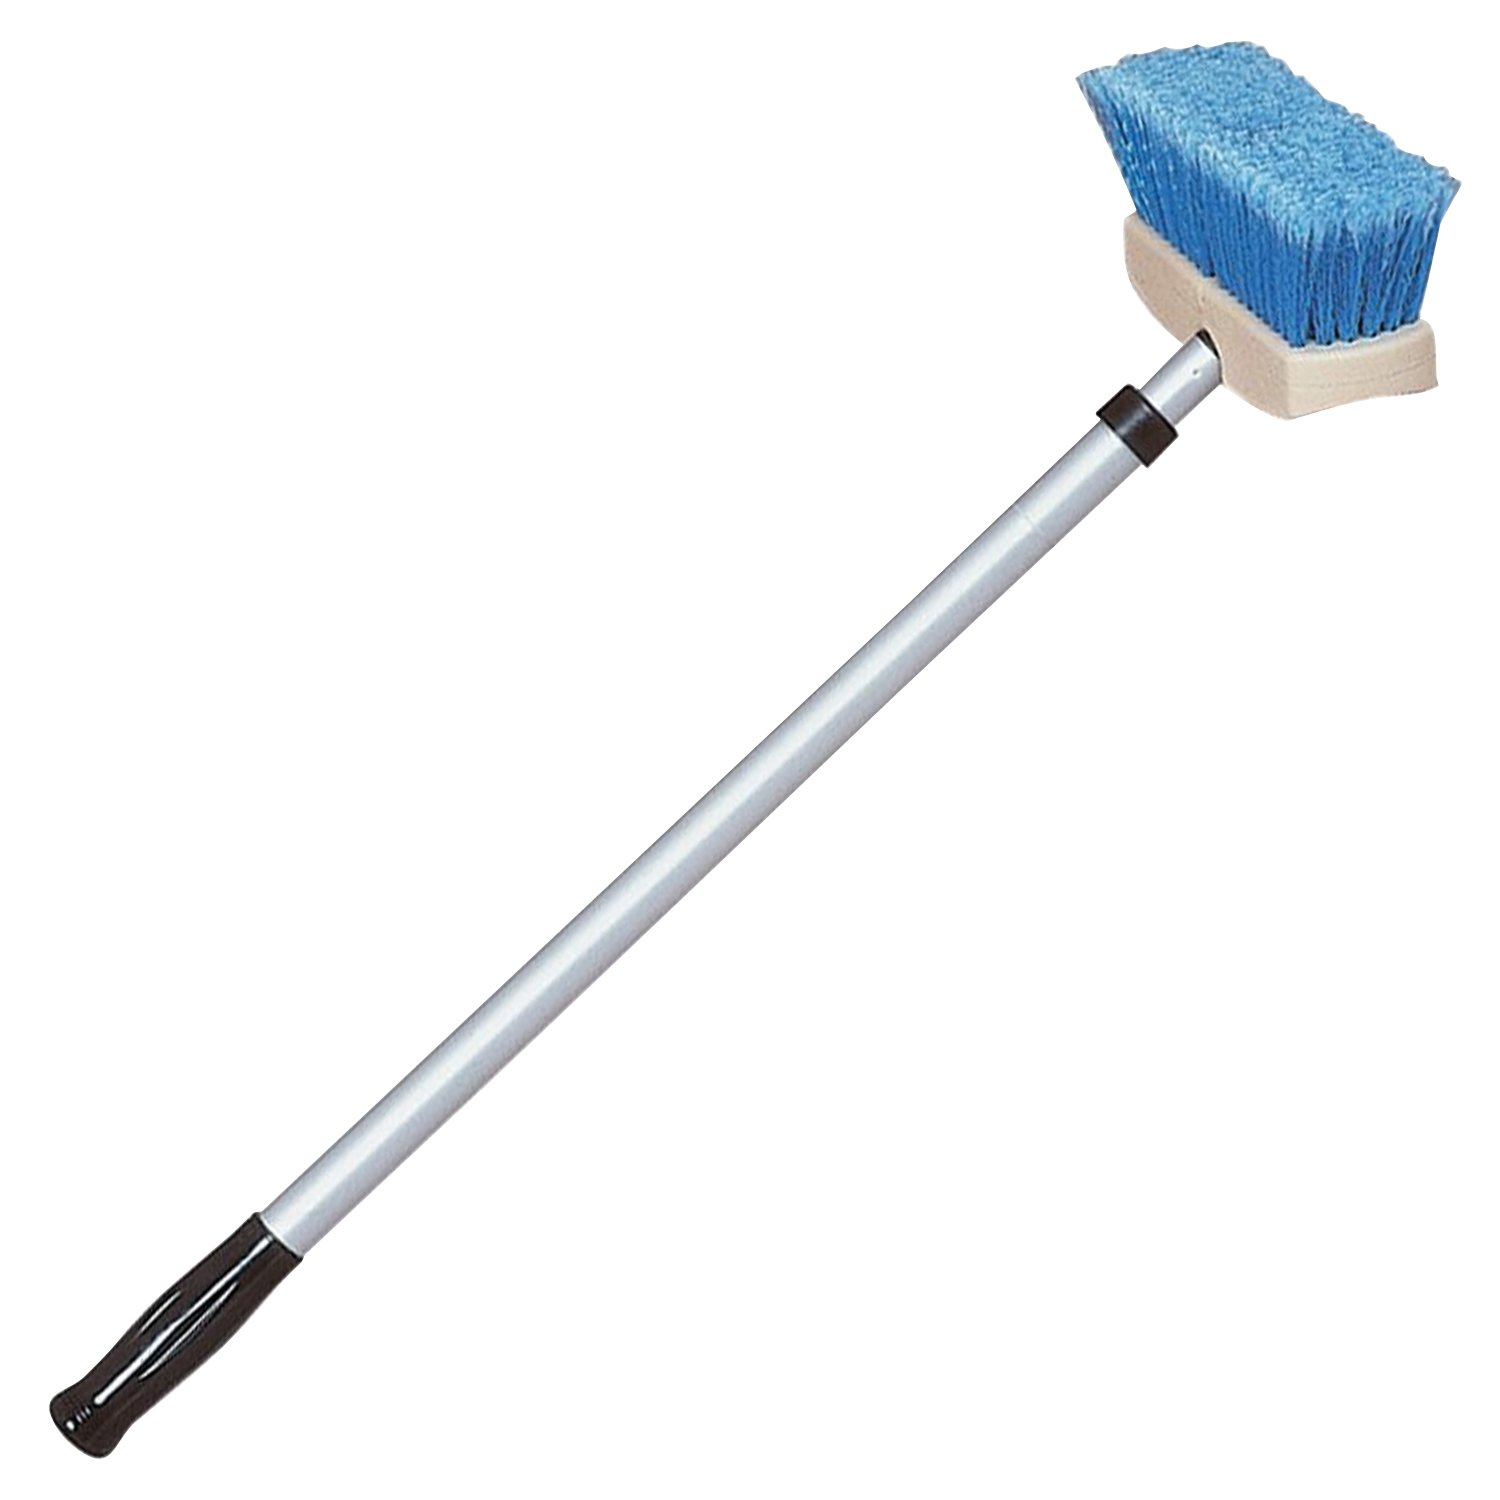 Star brite Brush & Compact Handle Combo - Extends 2'-4' - Made in USA